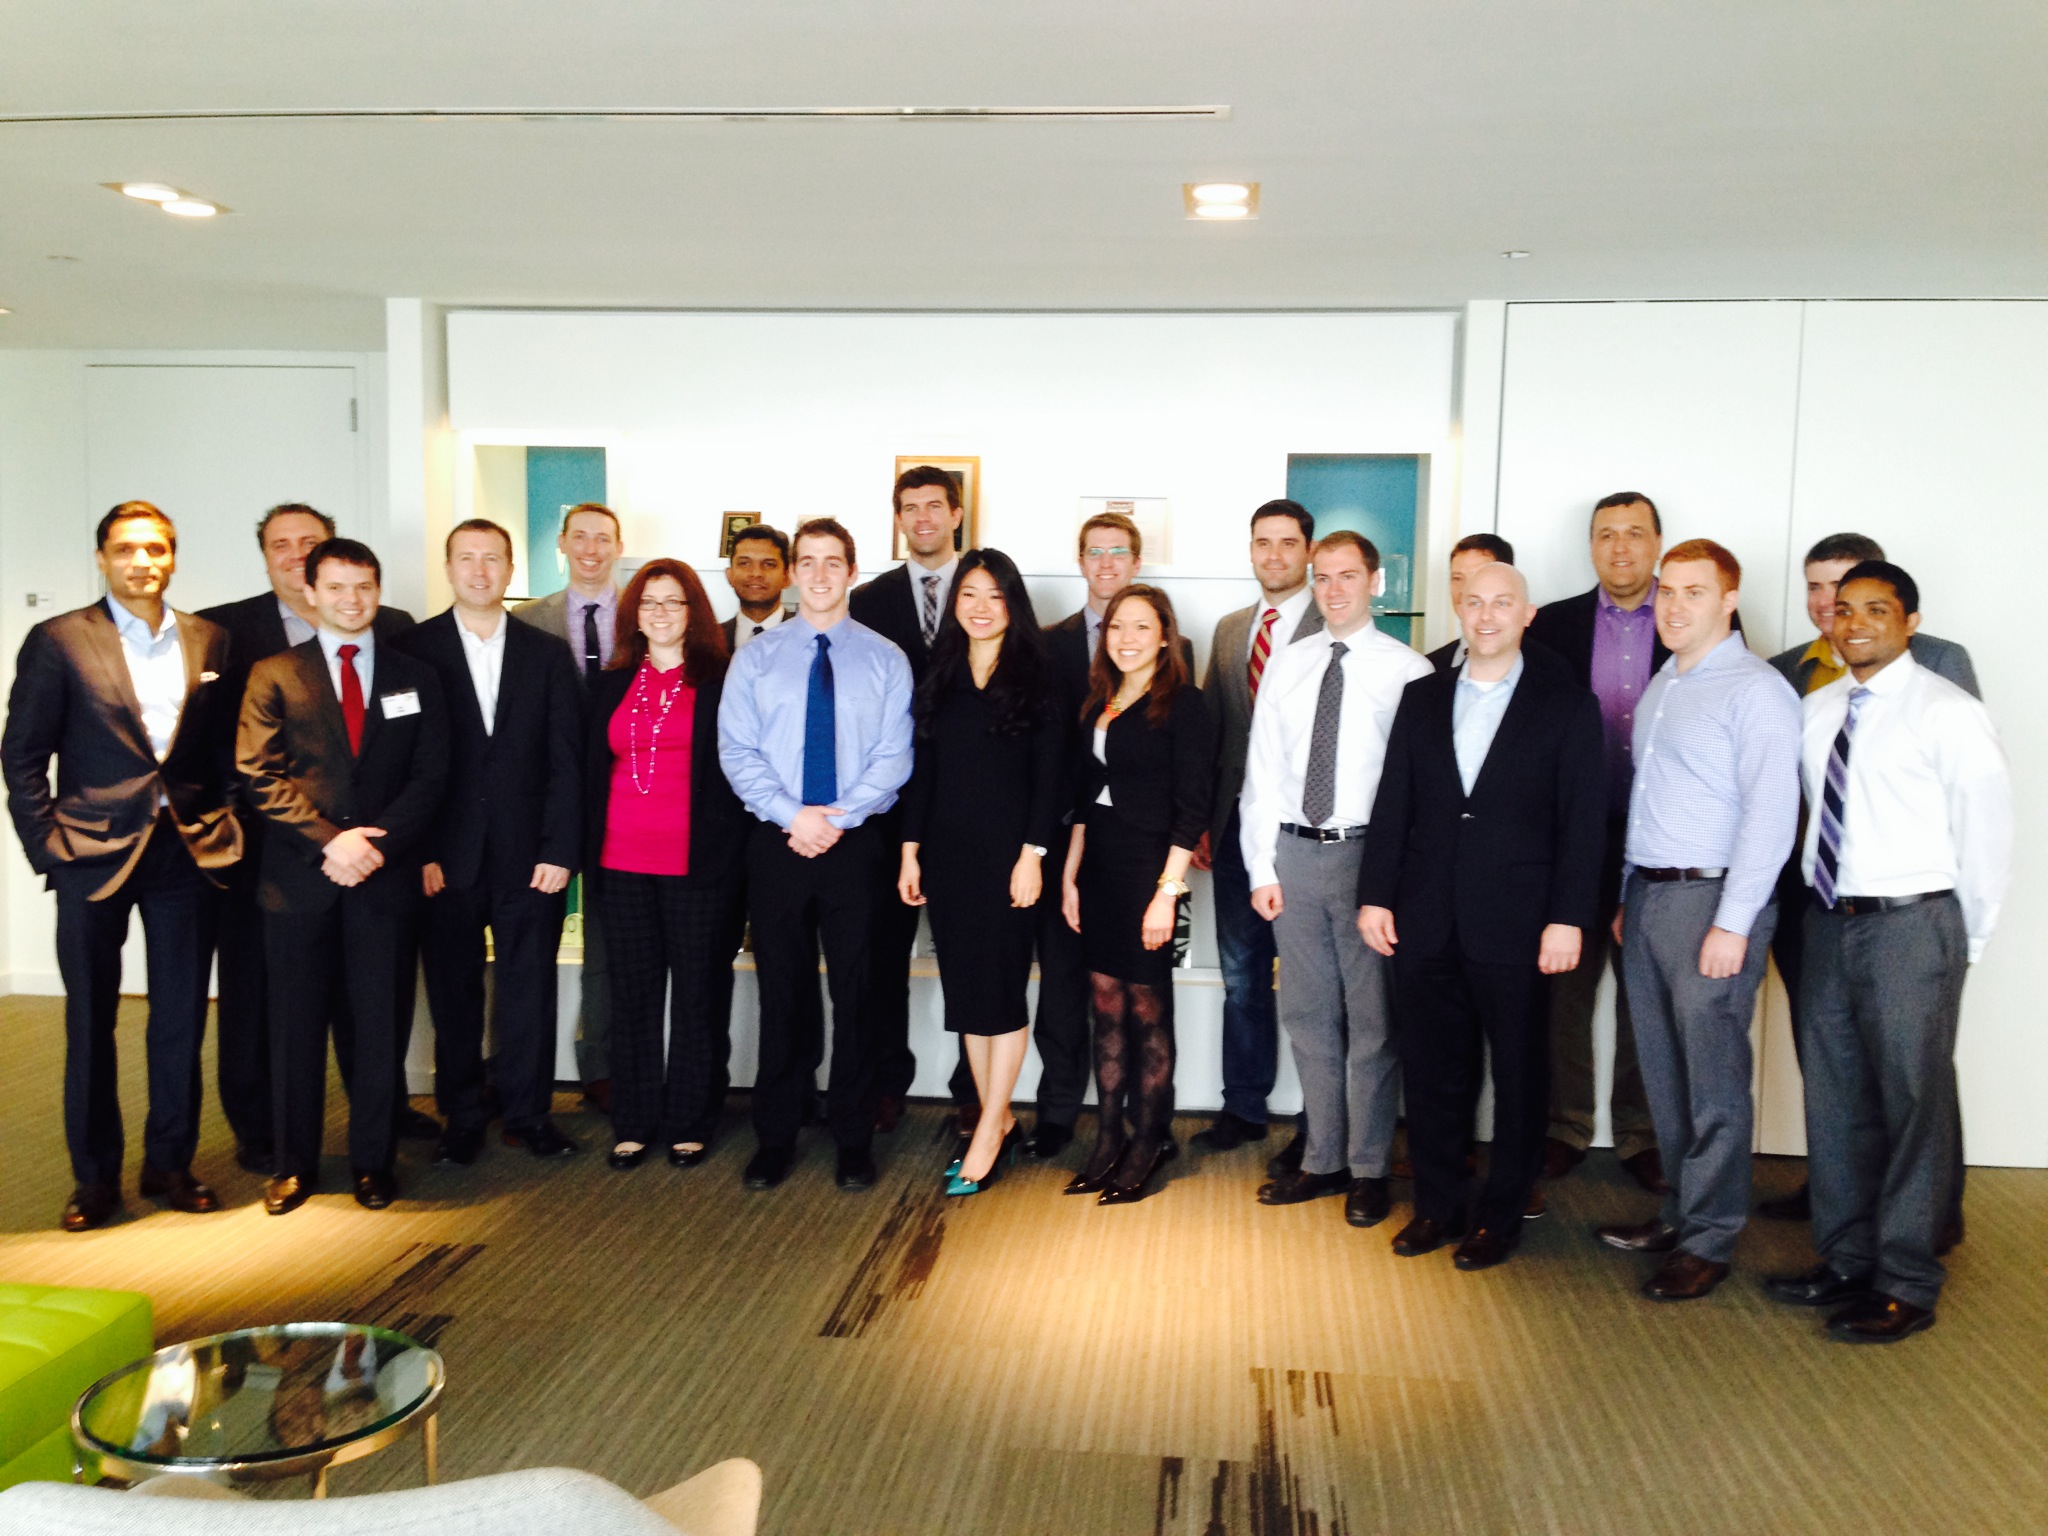 Announcing the Winners of the 2nd Annual Accenture and Northwestern